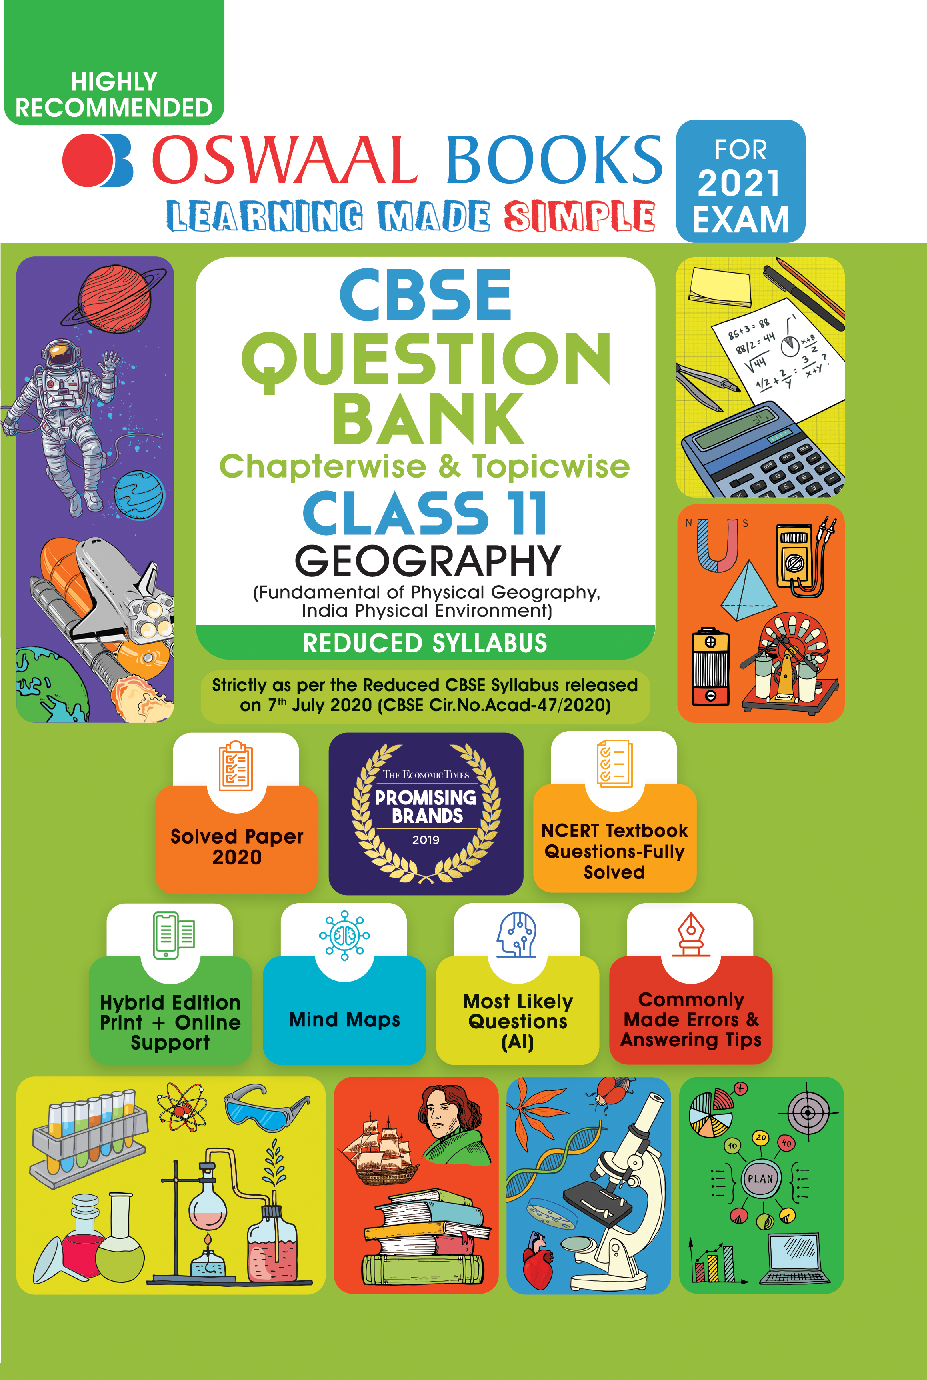 Oswaal CBSE Question Bank Chapterwise & Topicwise For Class - XI Geography Reduced Syllabus (For March 2021 Exam) - Page 1